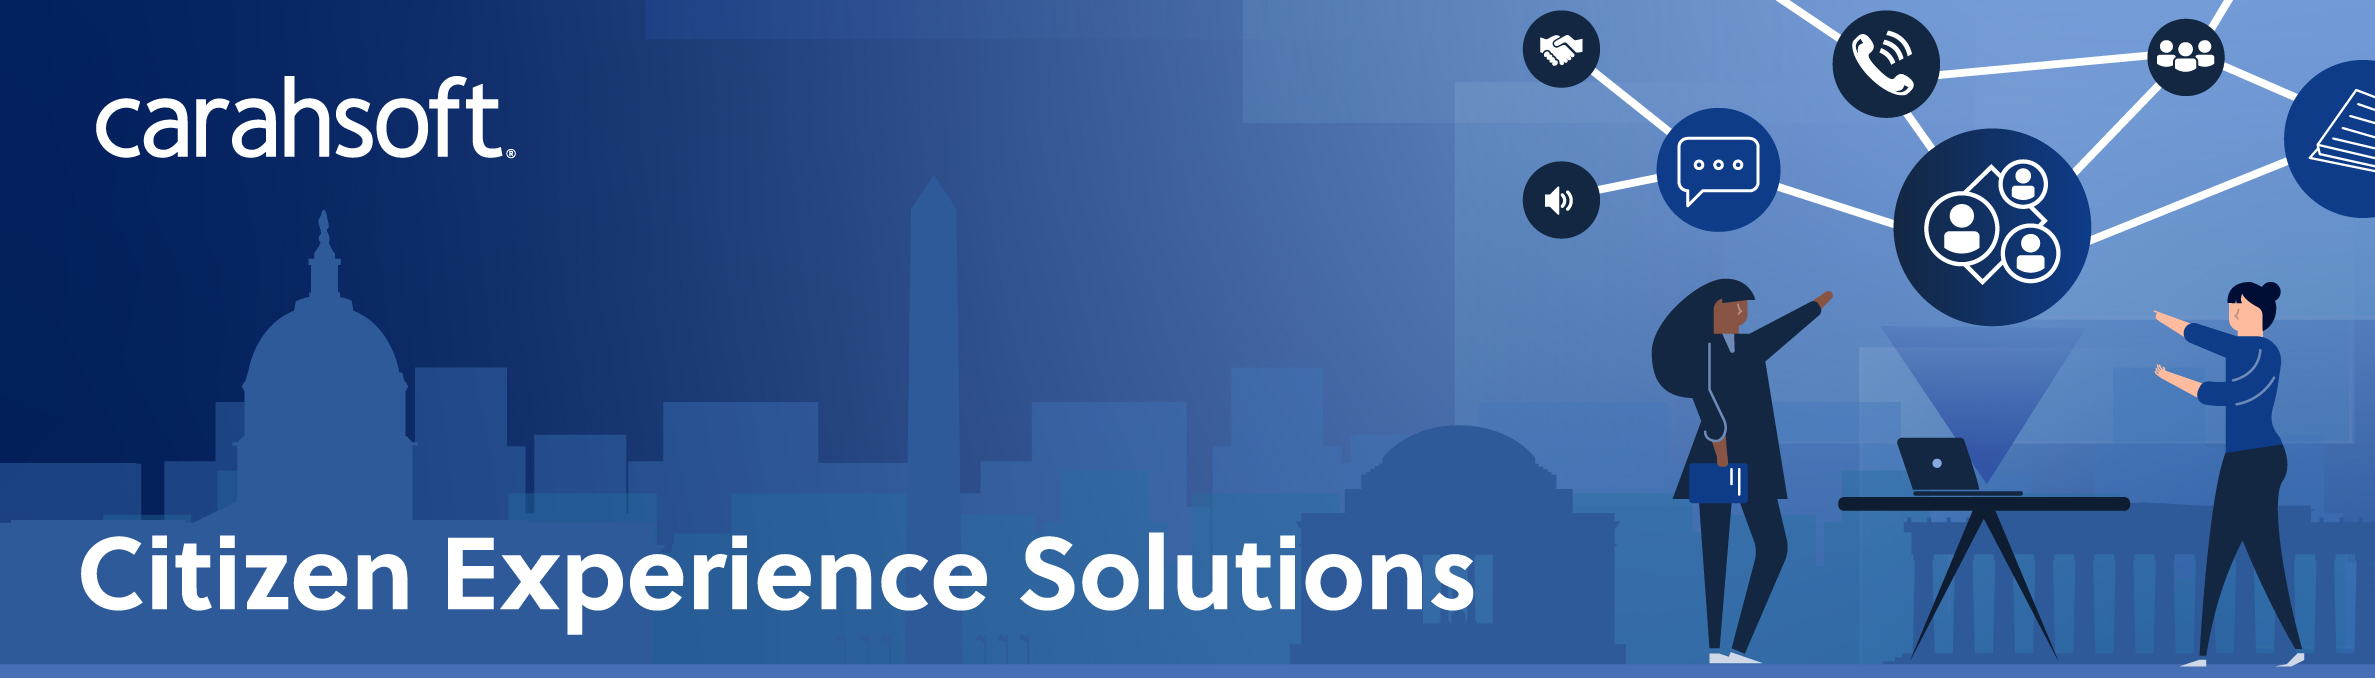 Citizen Experience Solutions_homepage banner.jpg